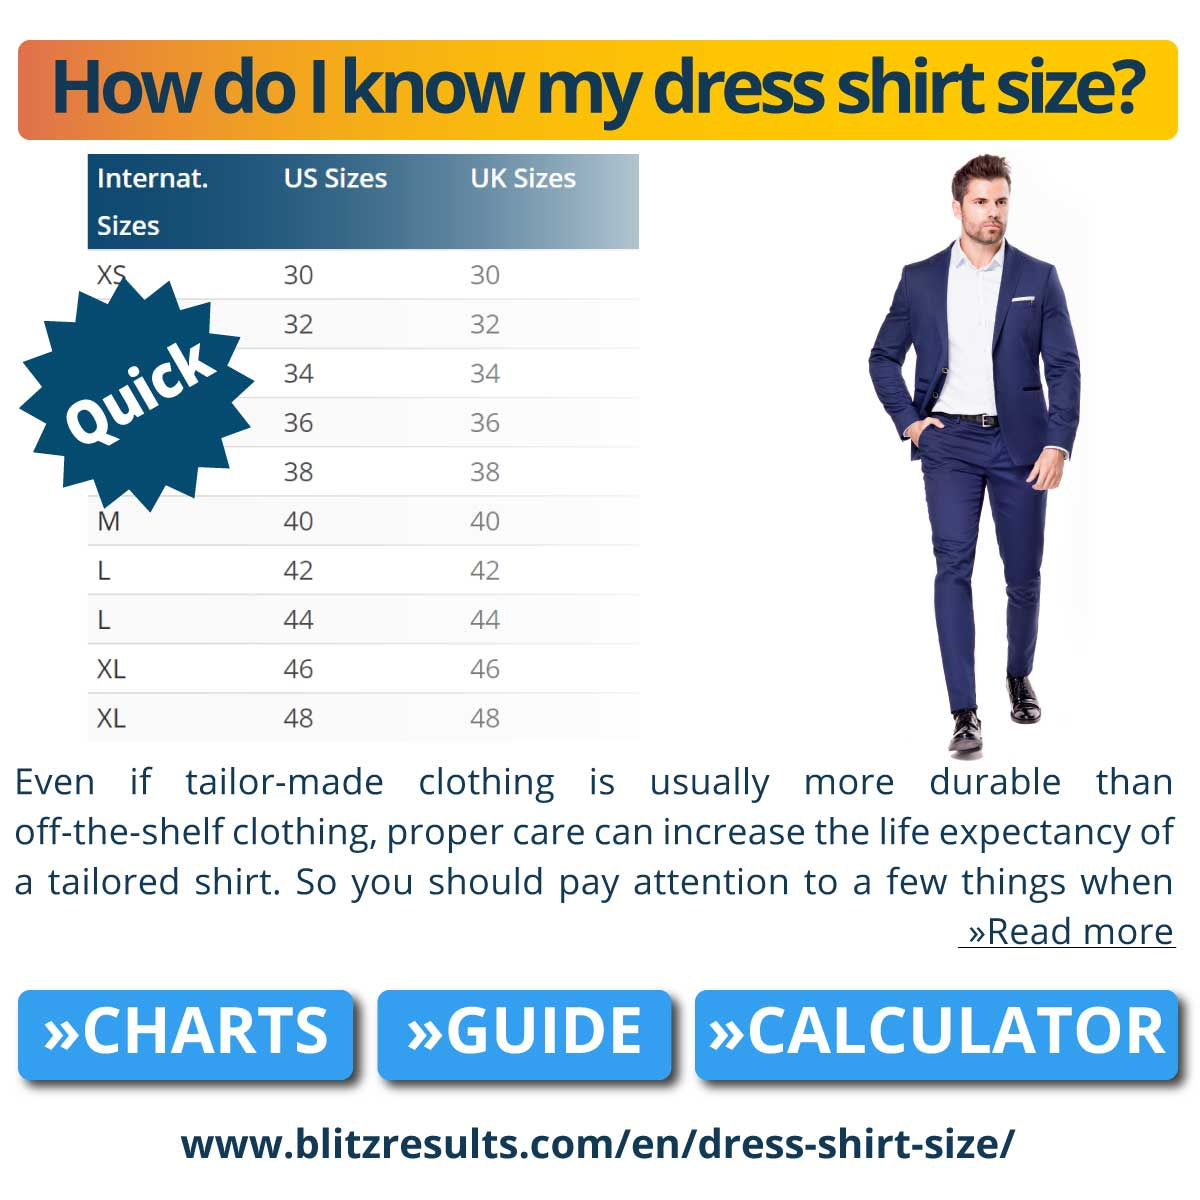 How do I know my dress shirt size?